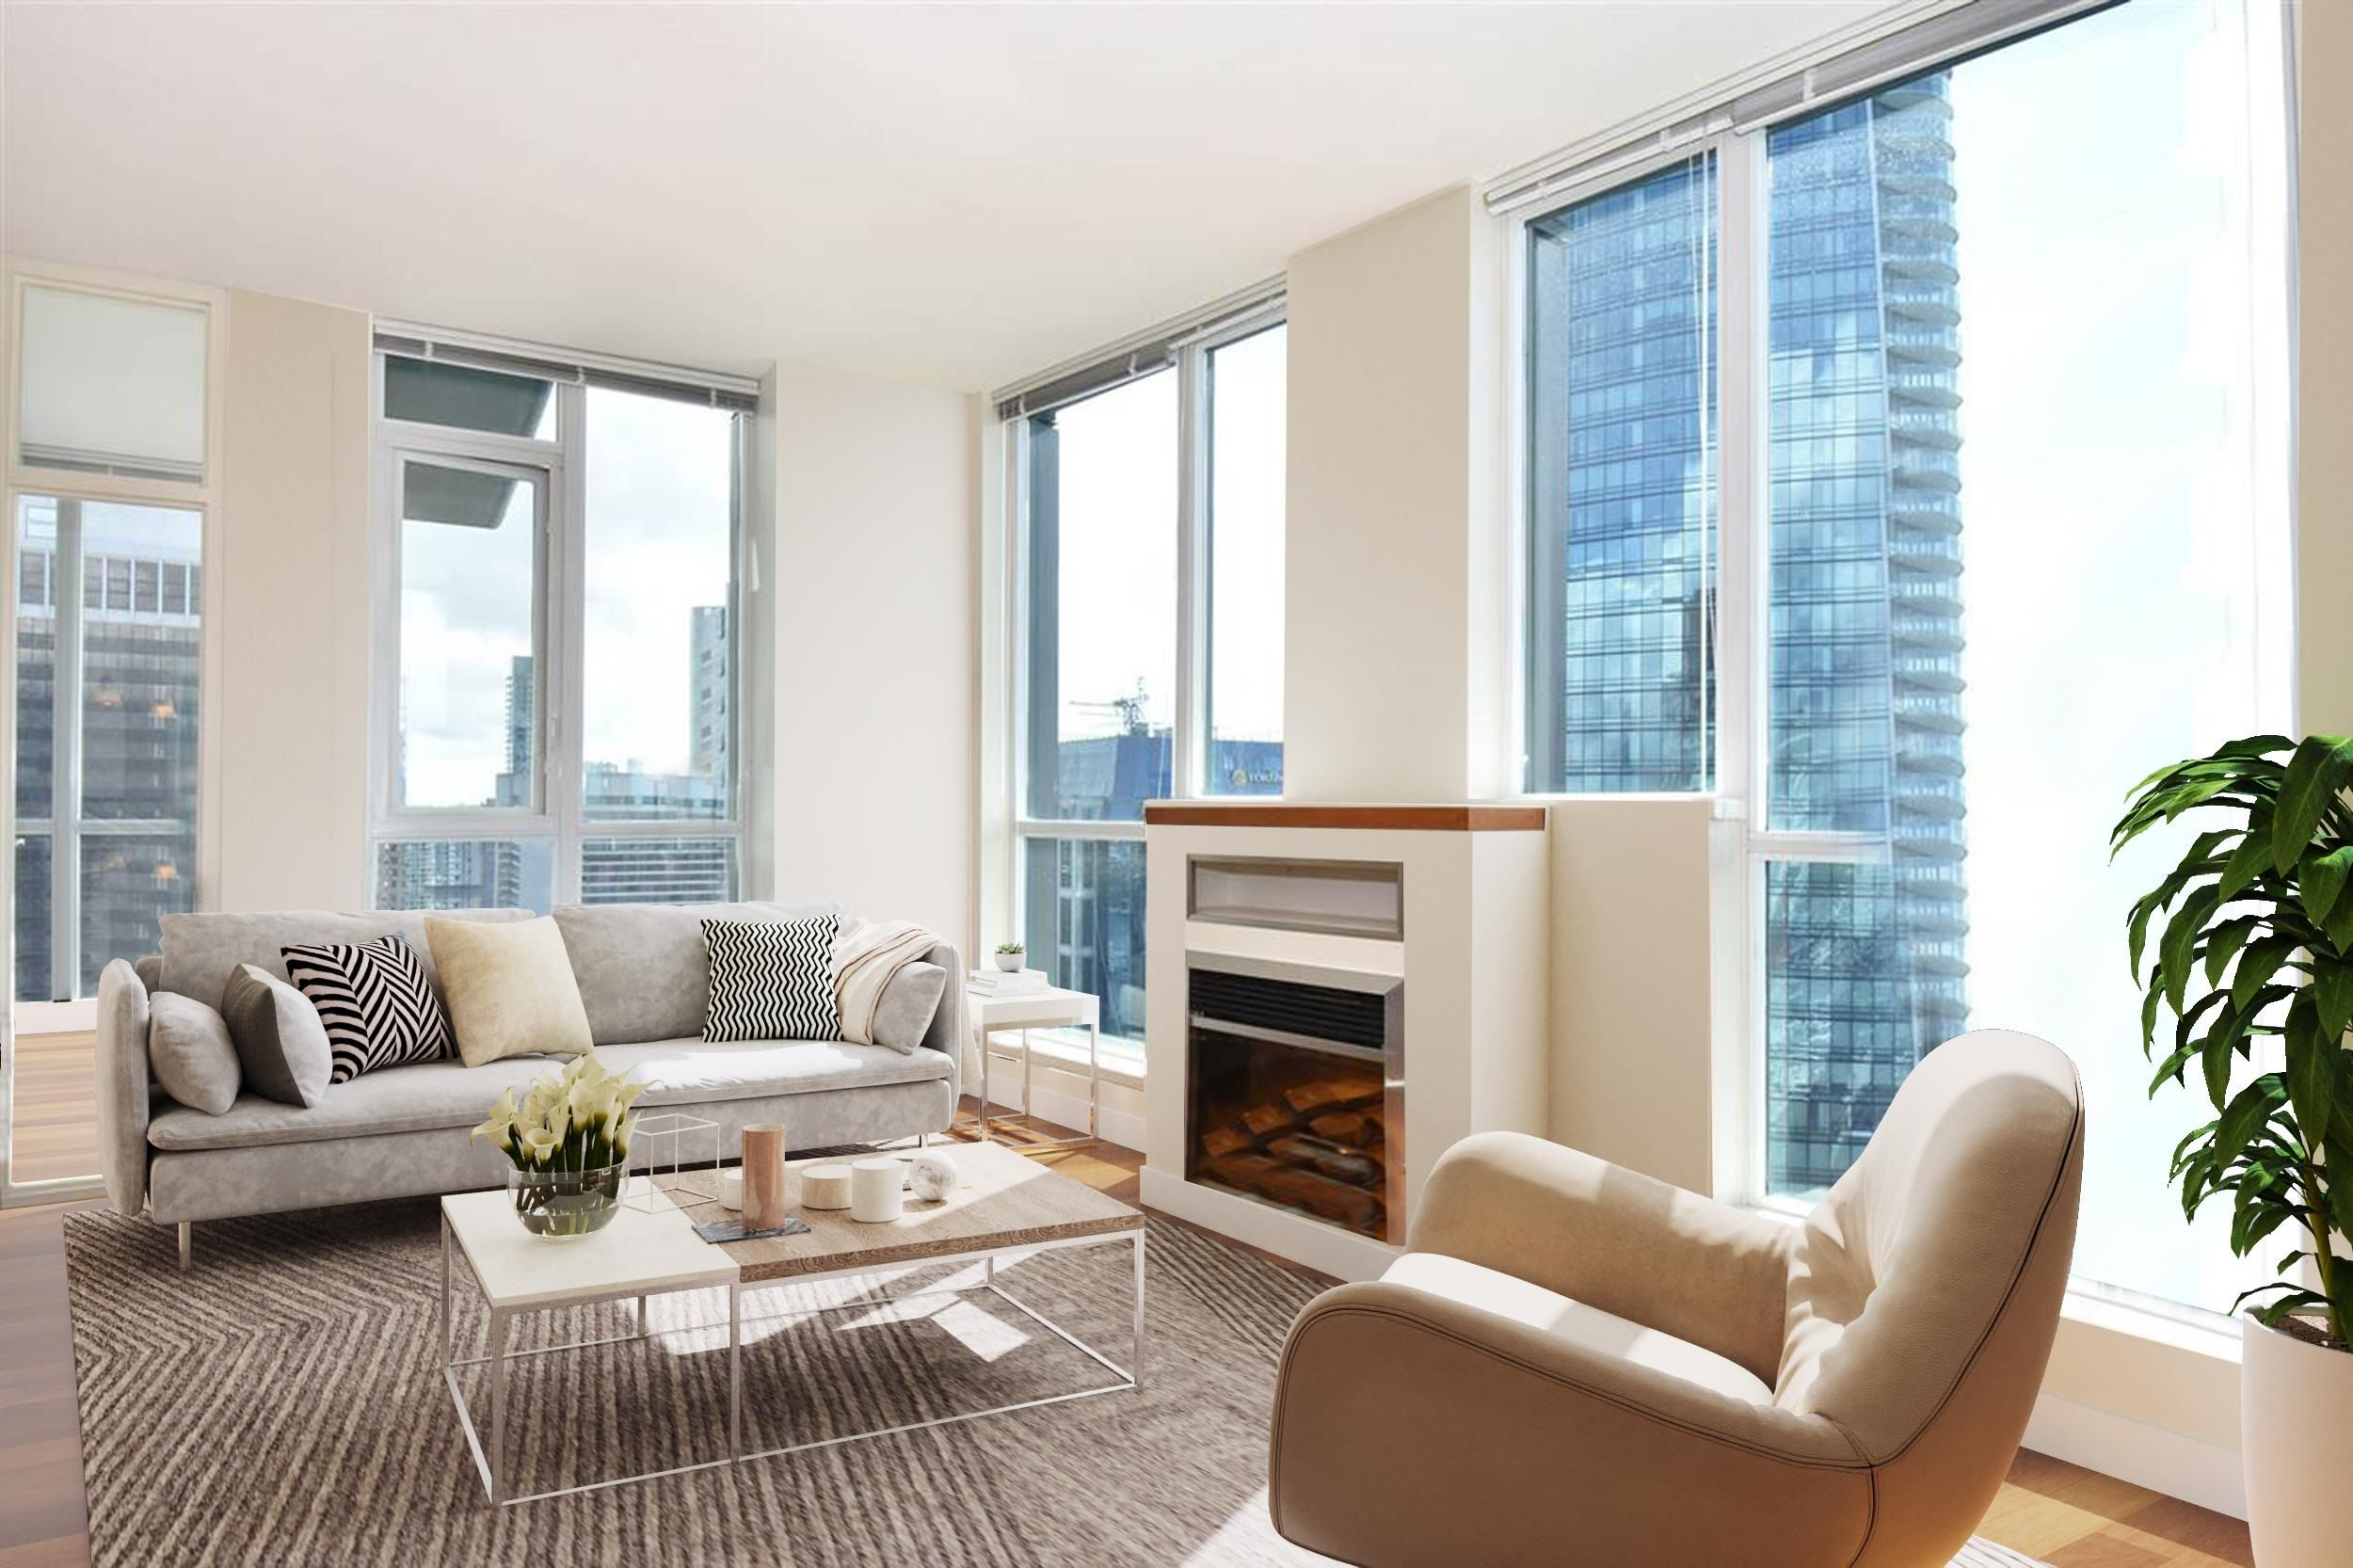 """Main Photo: 3704 1189 MELVILLE Street in Vancouver: Coal Harbour Condo for sale in """"THE MELVILLE"""" (Vancouver West)  : MLS®# R2624589"""